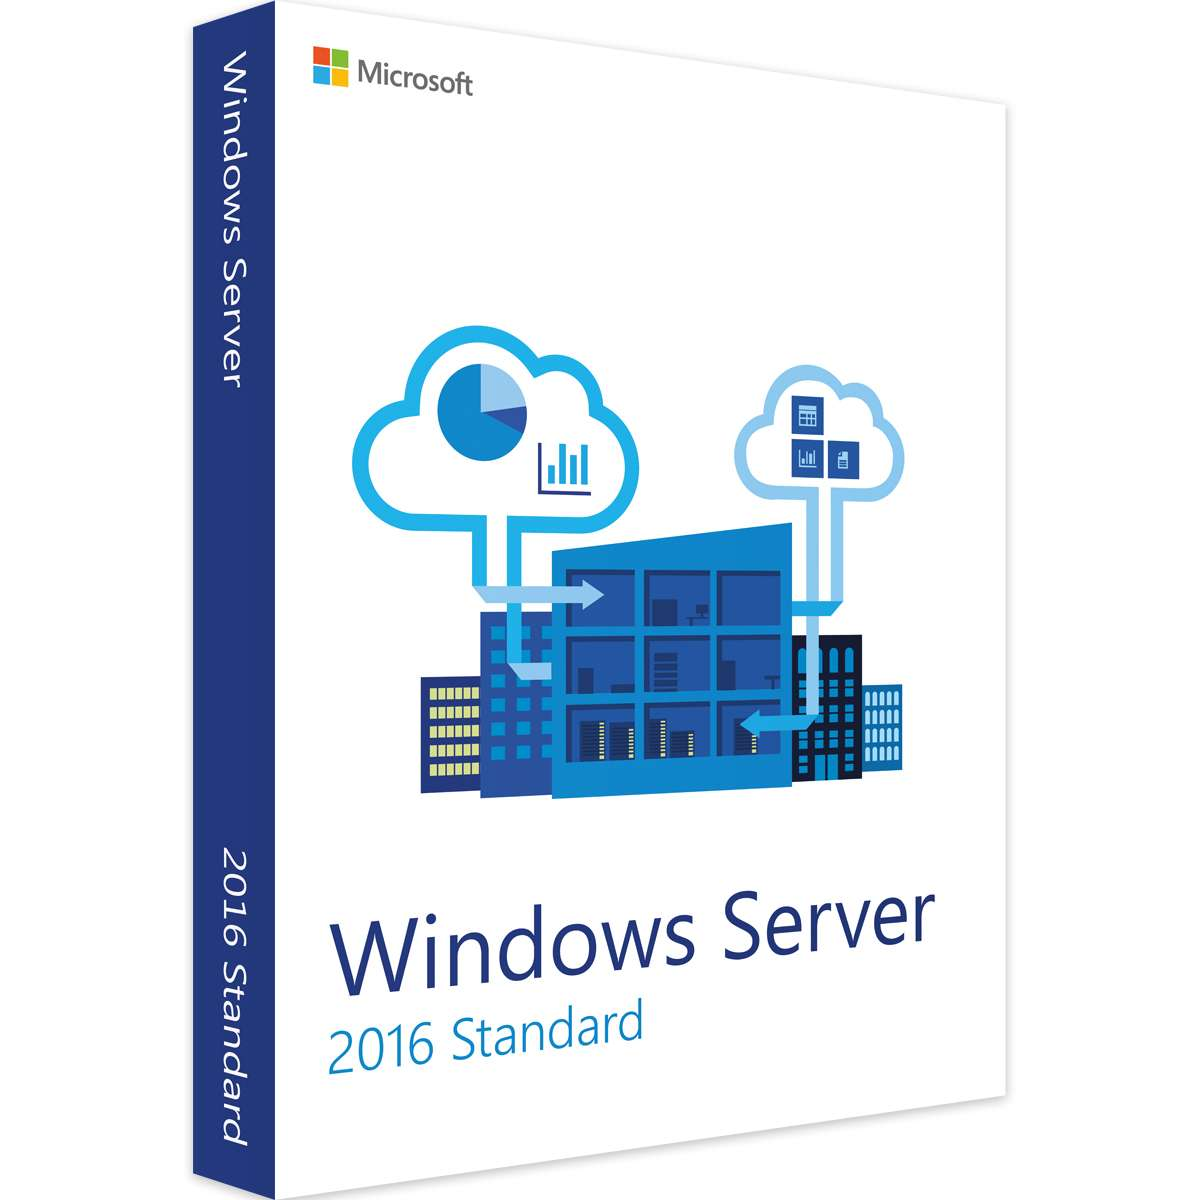 winserver2016 package